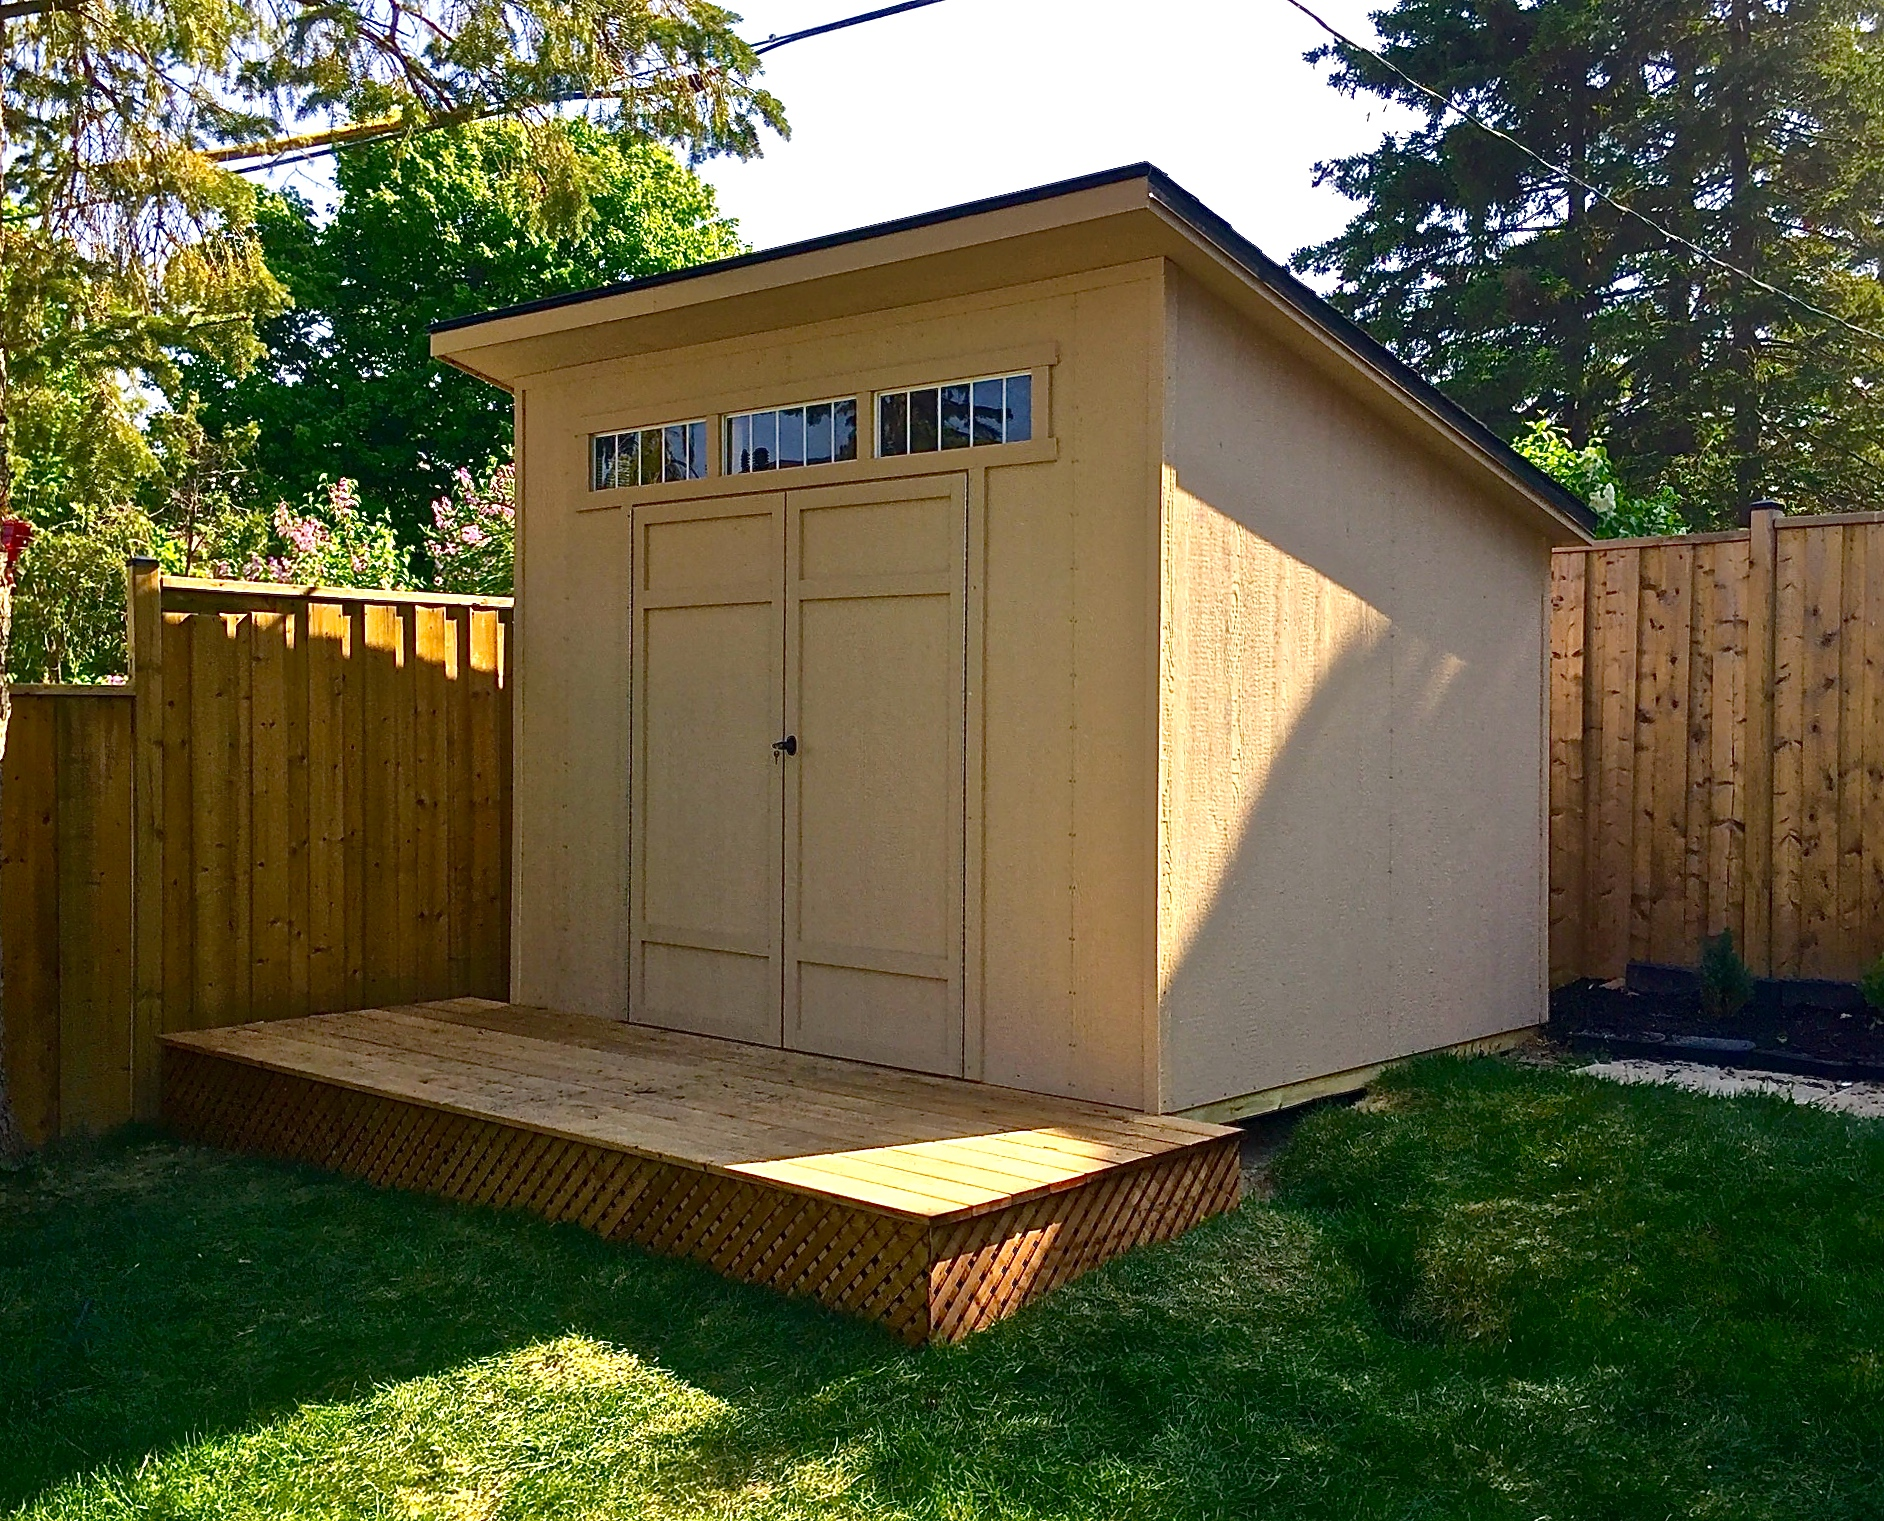 Rubbermaid Sheds | How to Assemble Rubbermaid Storage Shed | Storage Sheds Lowes